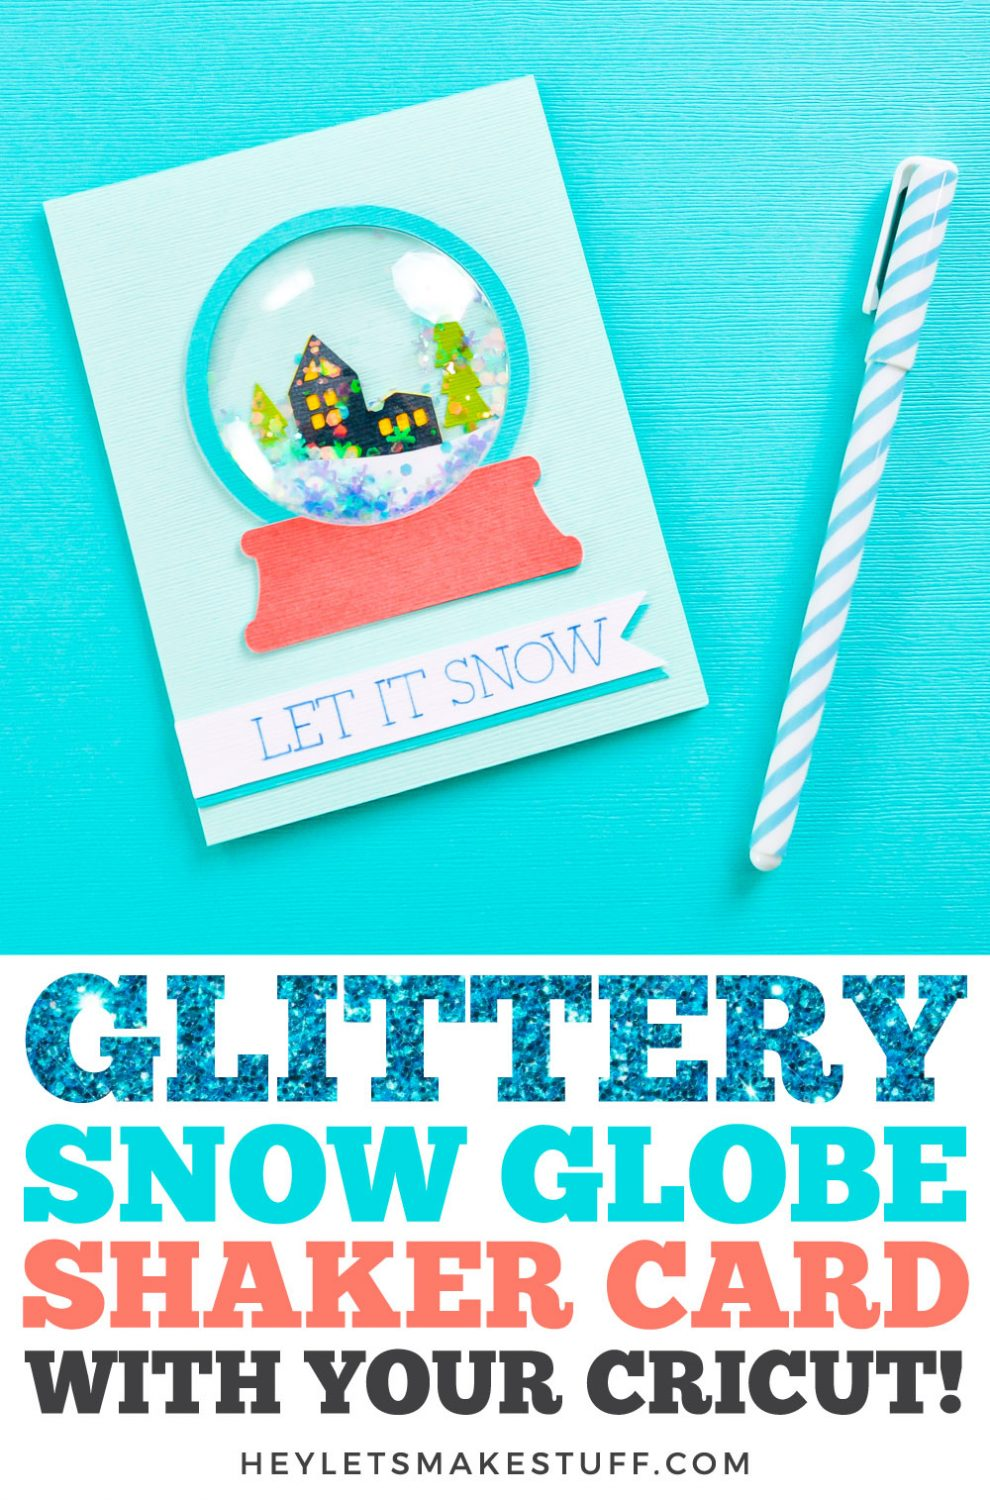 Glittery Snow Globe Shaker Card with Your Cricut pin image.